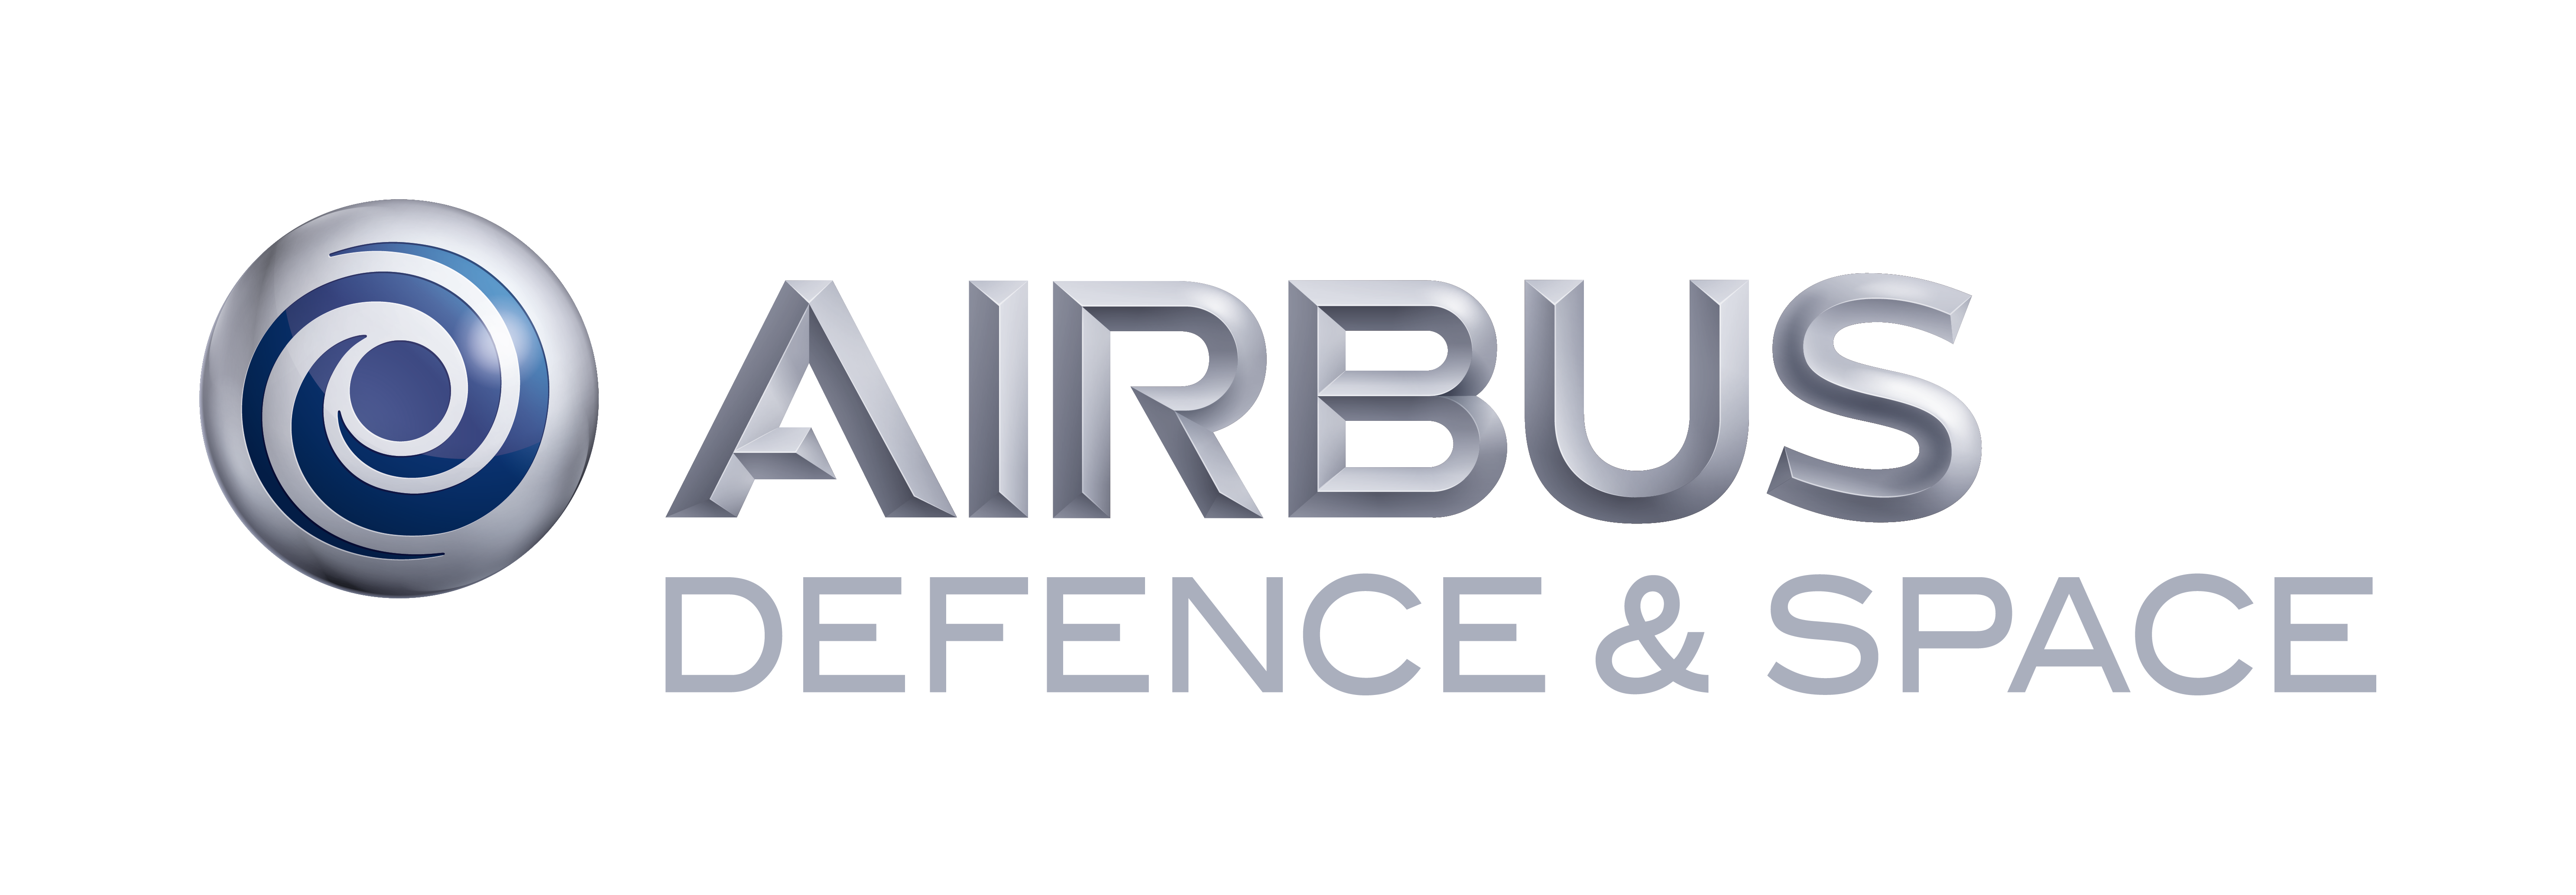 AIRBUS DÉFENCE & SPACE